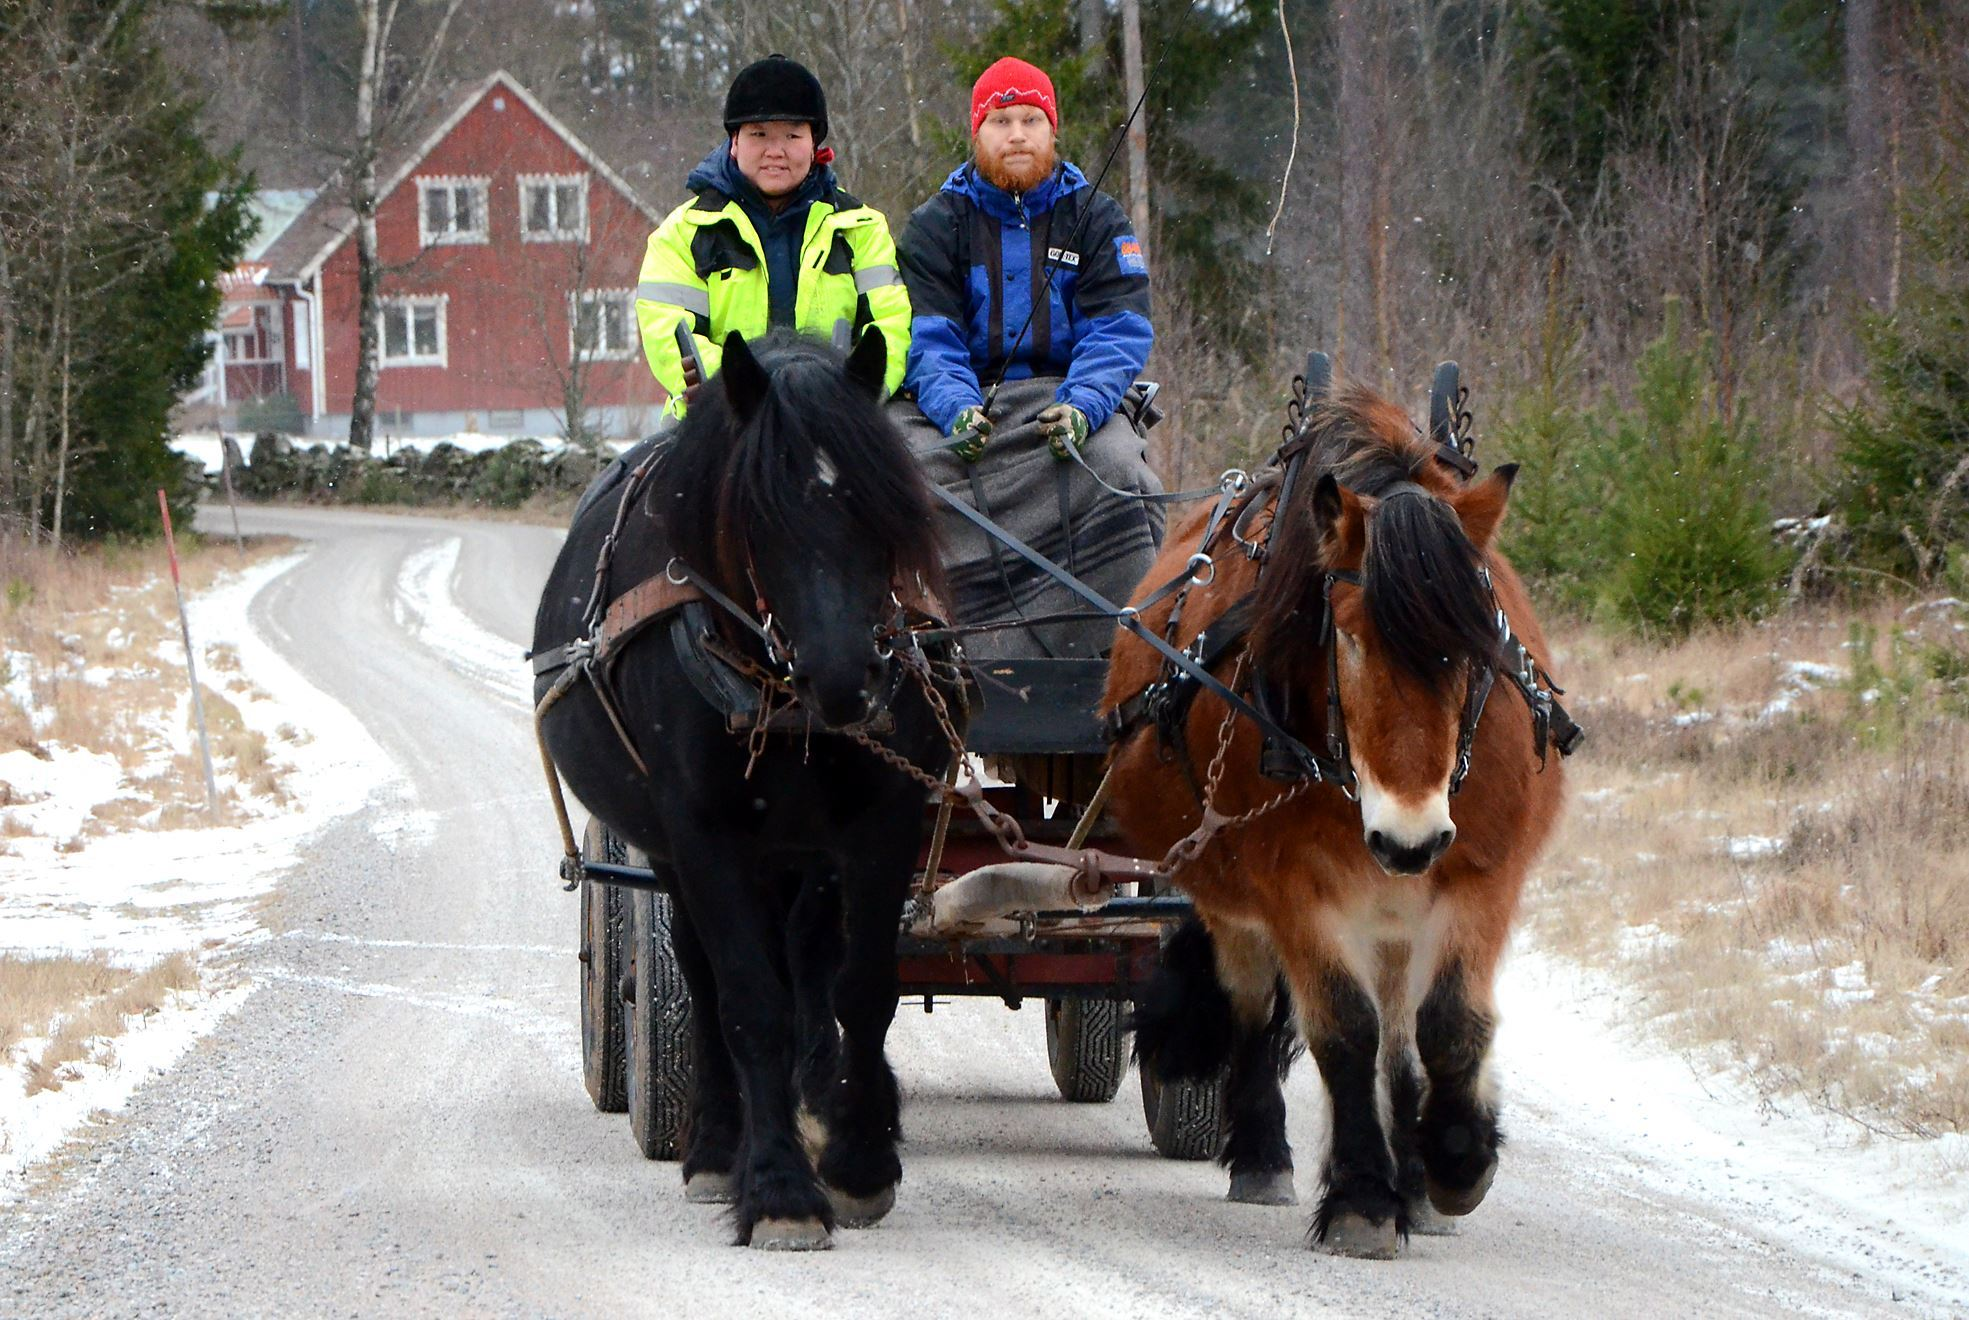 Horses: Fyrfota hästkraft - Tours with horse and carrige or sleigh